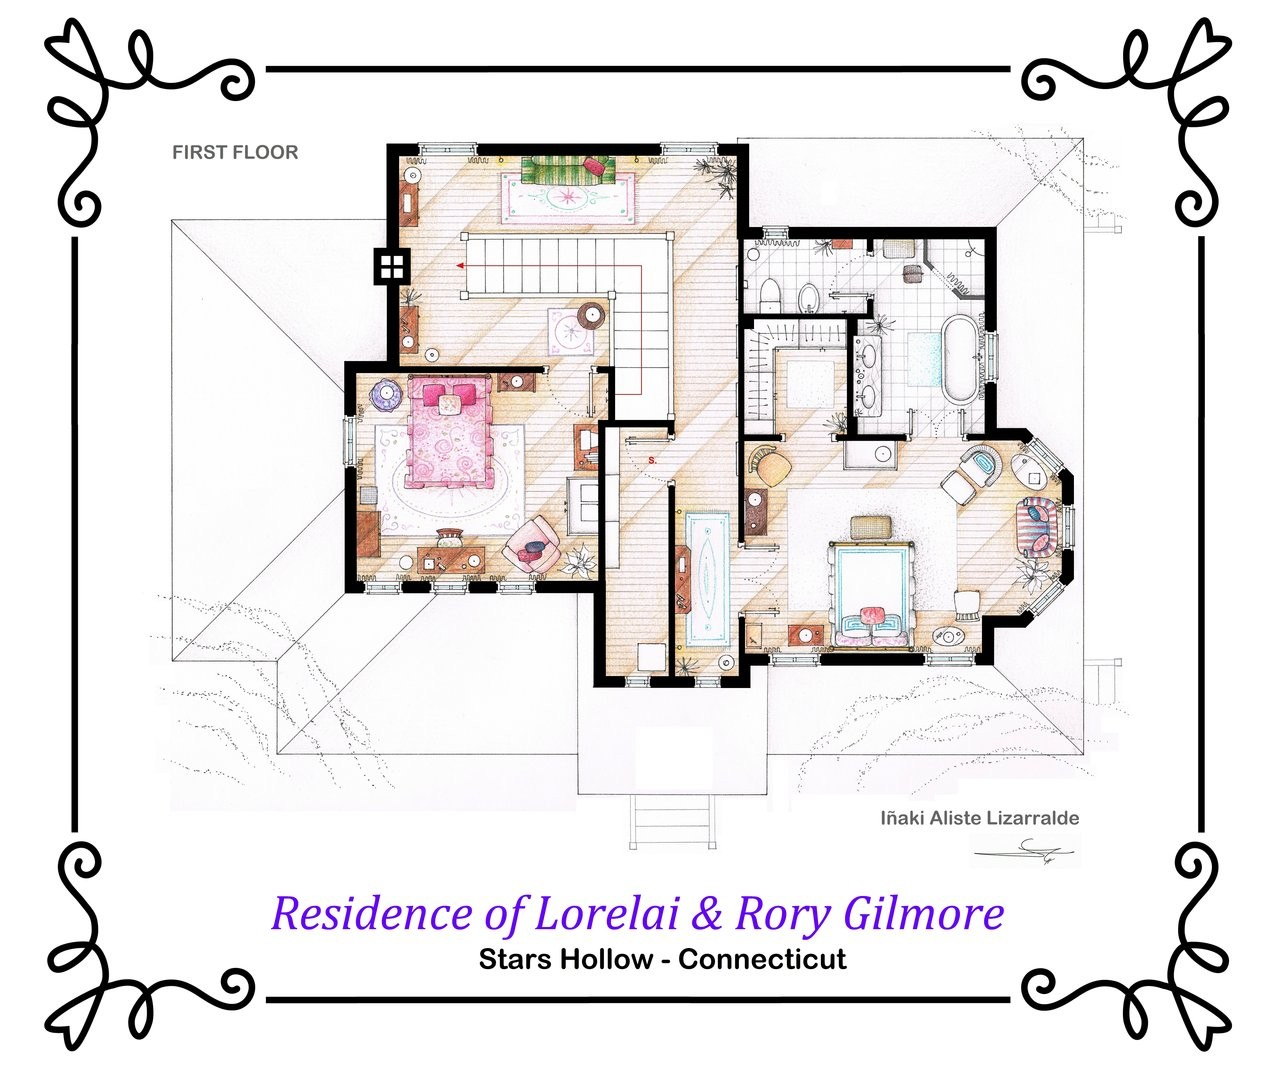 Gallery of from friends to frasier 13 famous tv shows for Strumento di layout piano terra